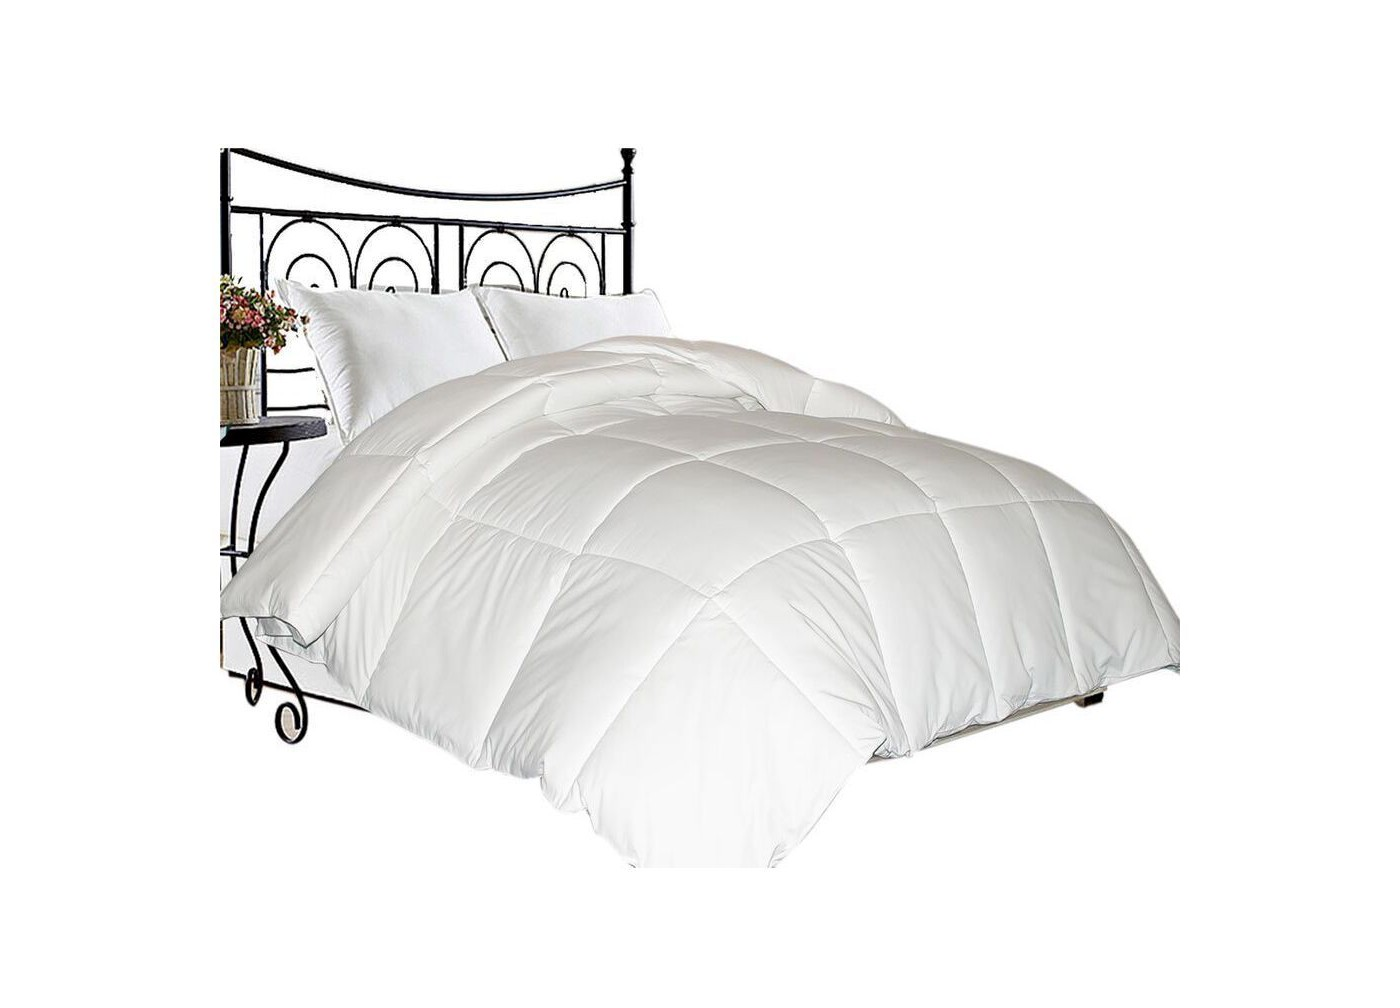 Microfiber Down Blend Comforter White - Blue Ridge Home Fashions - image 1 of 1